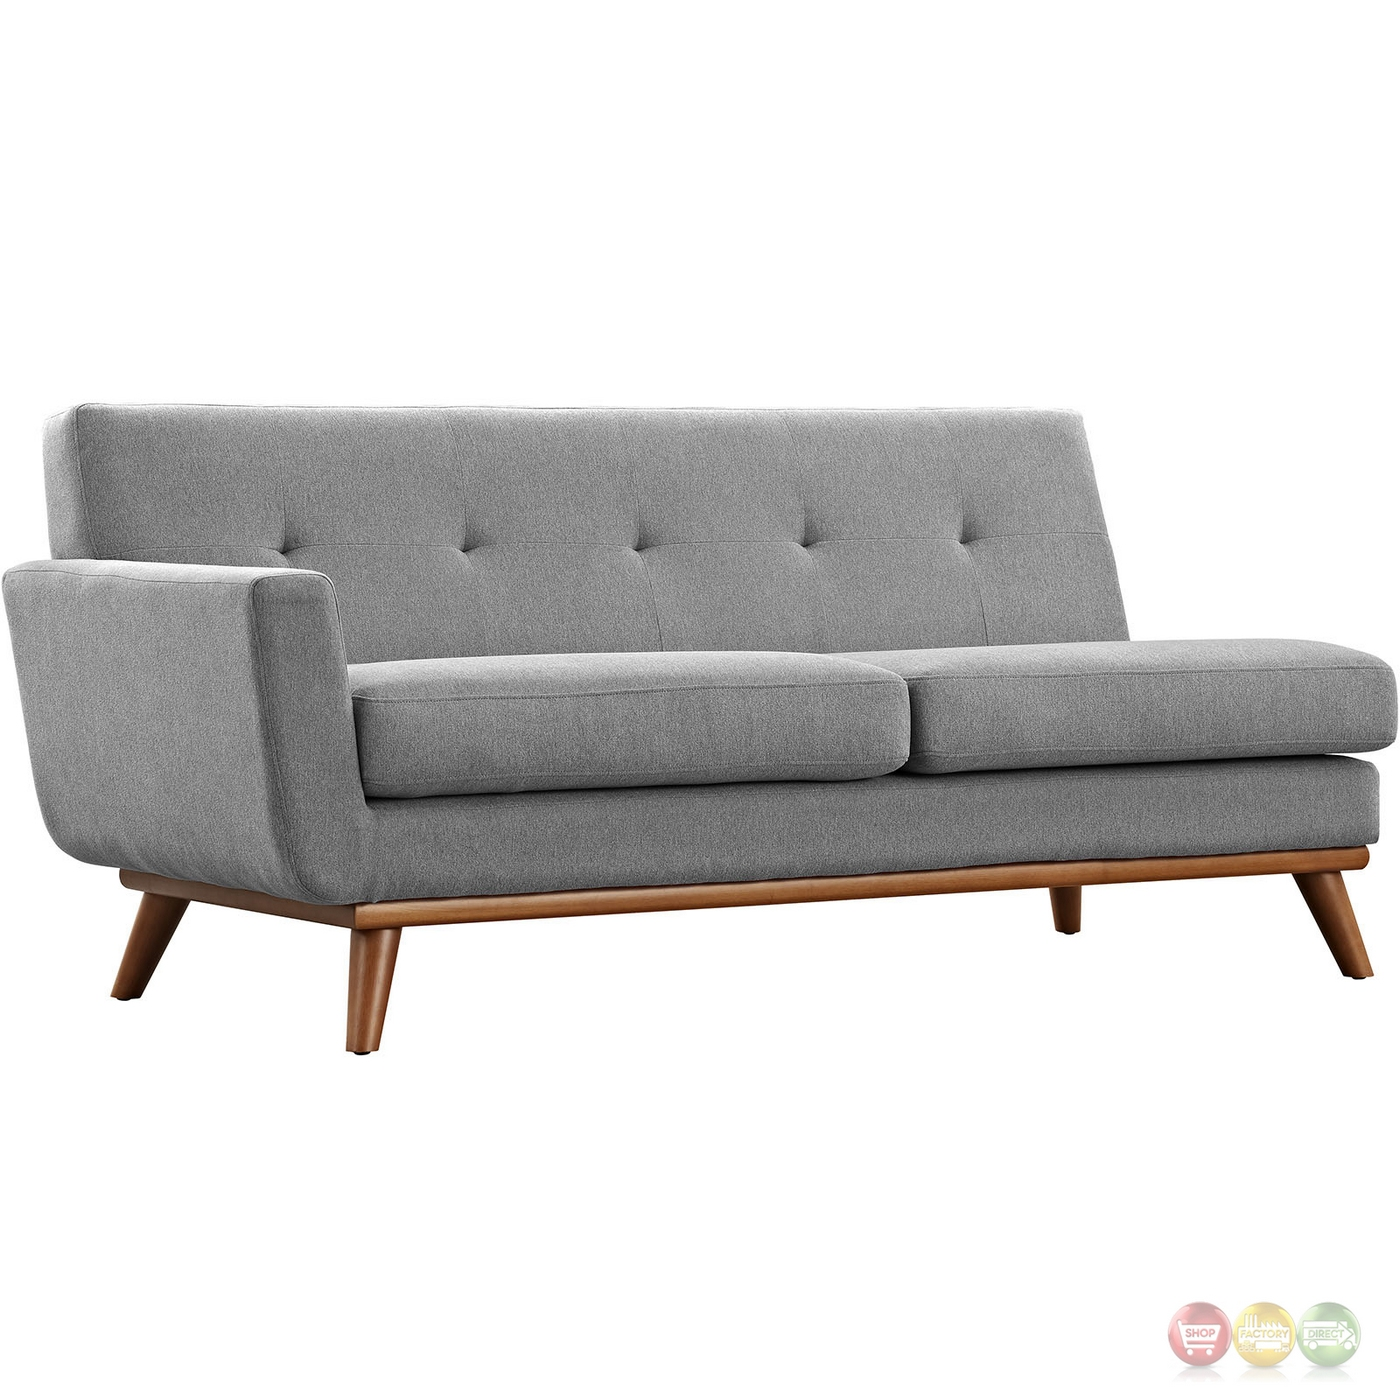 Mid century modern engage right facing chaise sectional sofa expectation gray Loveseat chaise sectional